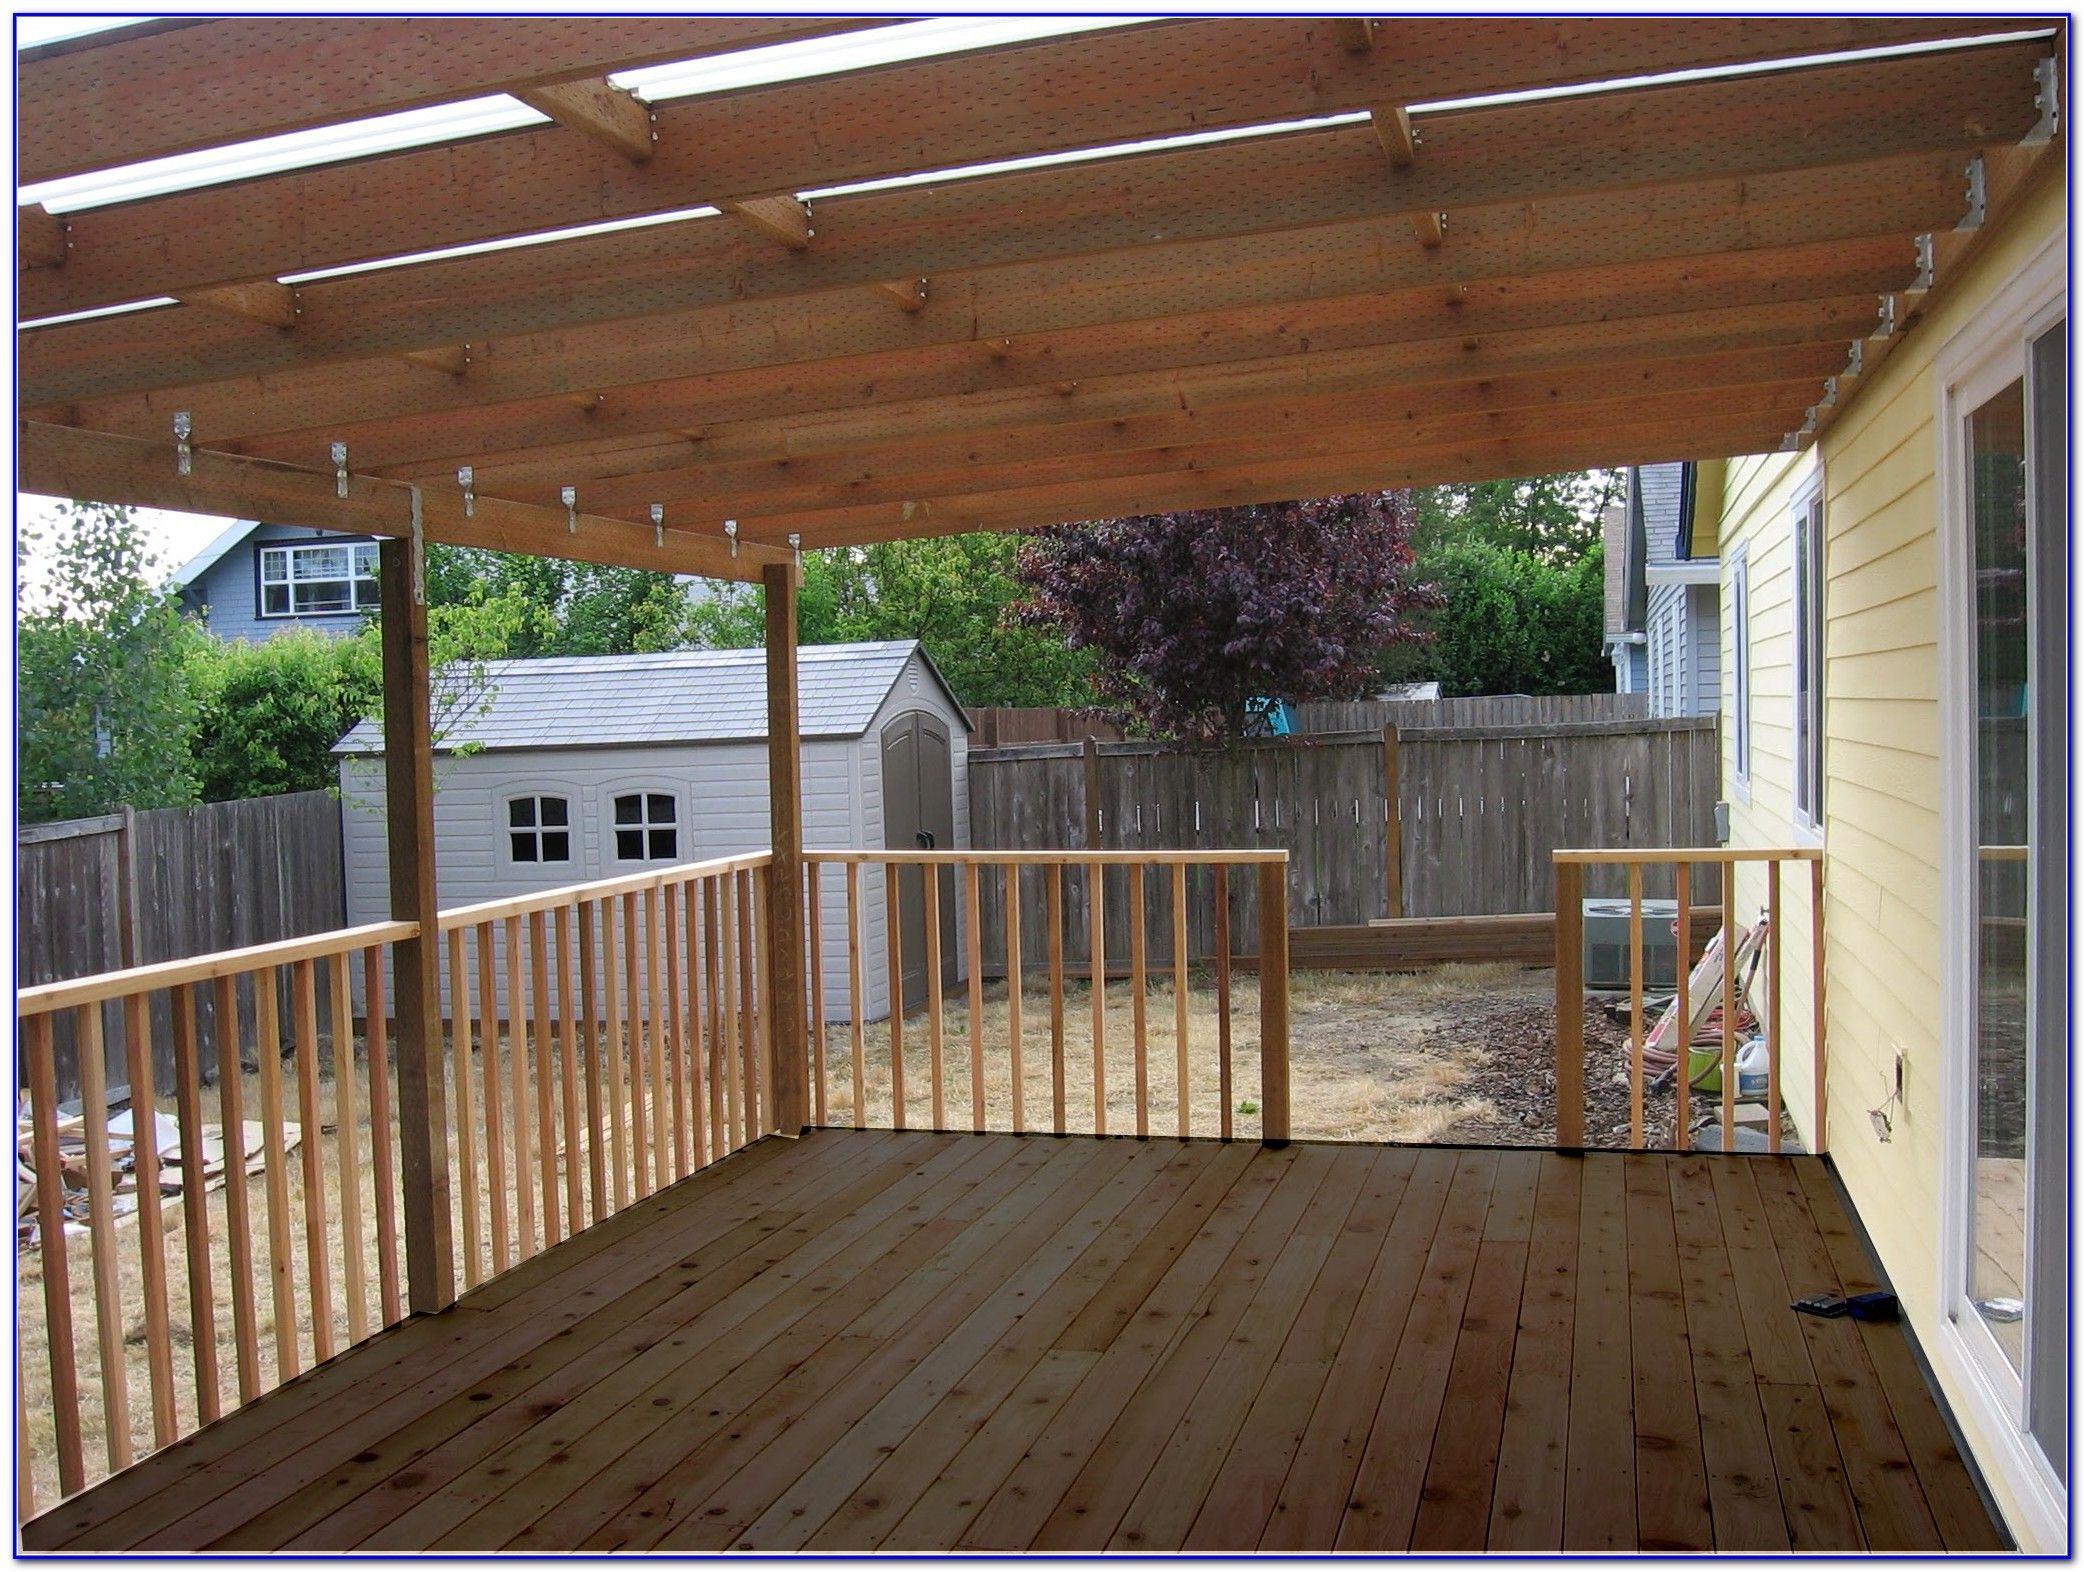 Covered deck designs pictures covered deck pictures covered deck ideas on a budget roof over deck pictures how to build a covered deck roof deck